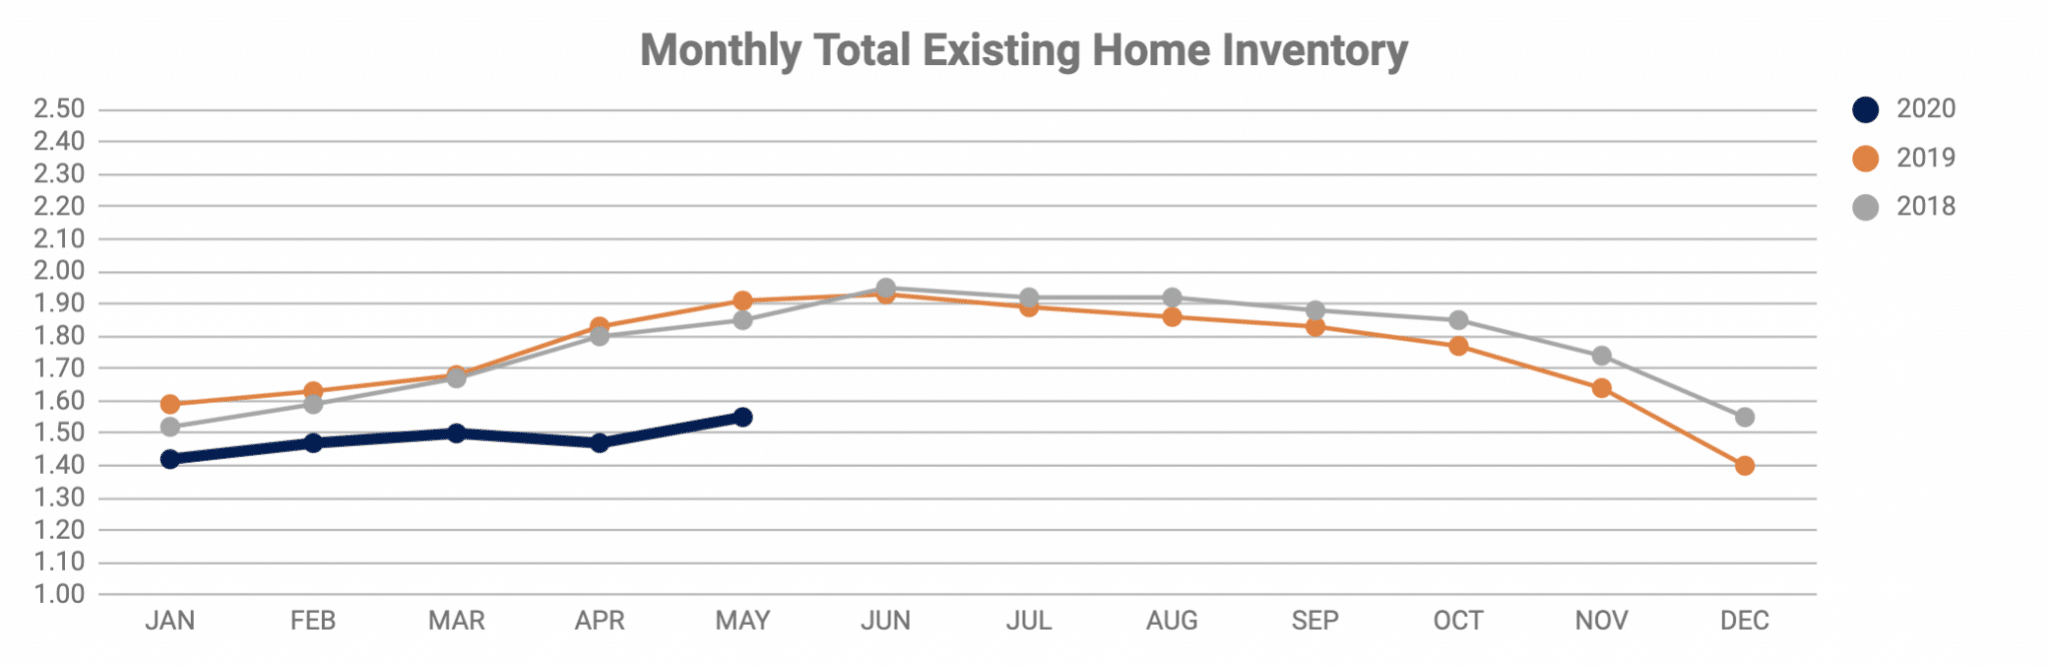 Monthly Total Existing Home Inventory